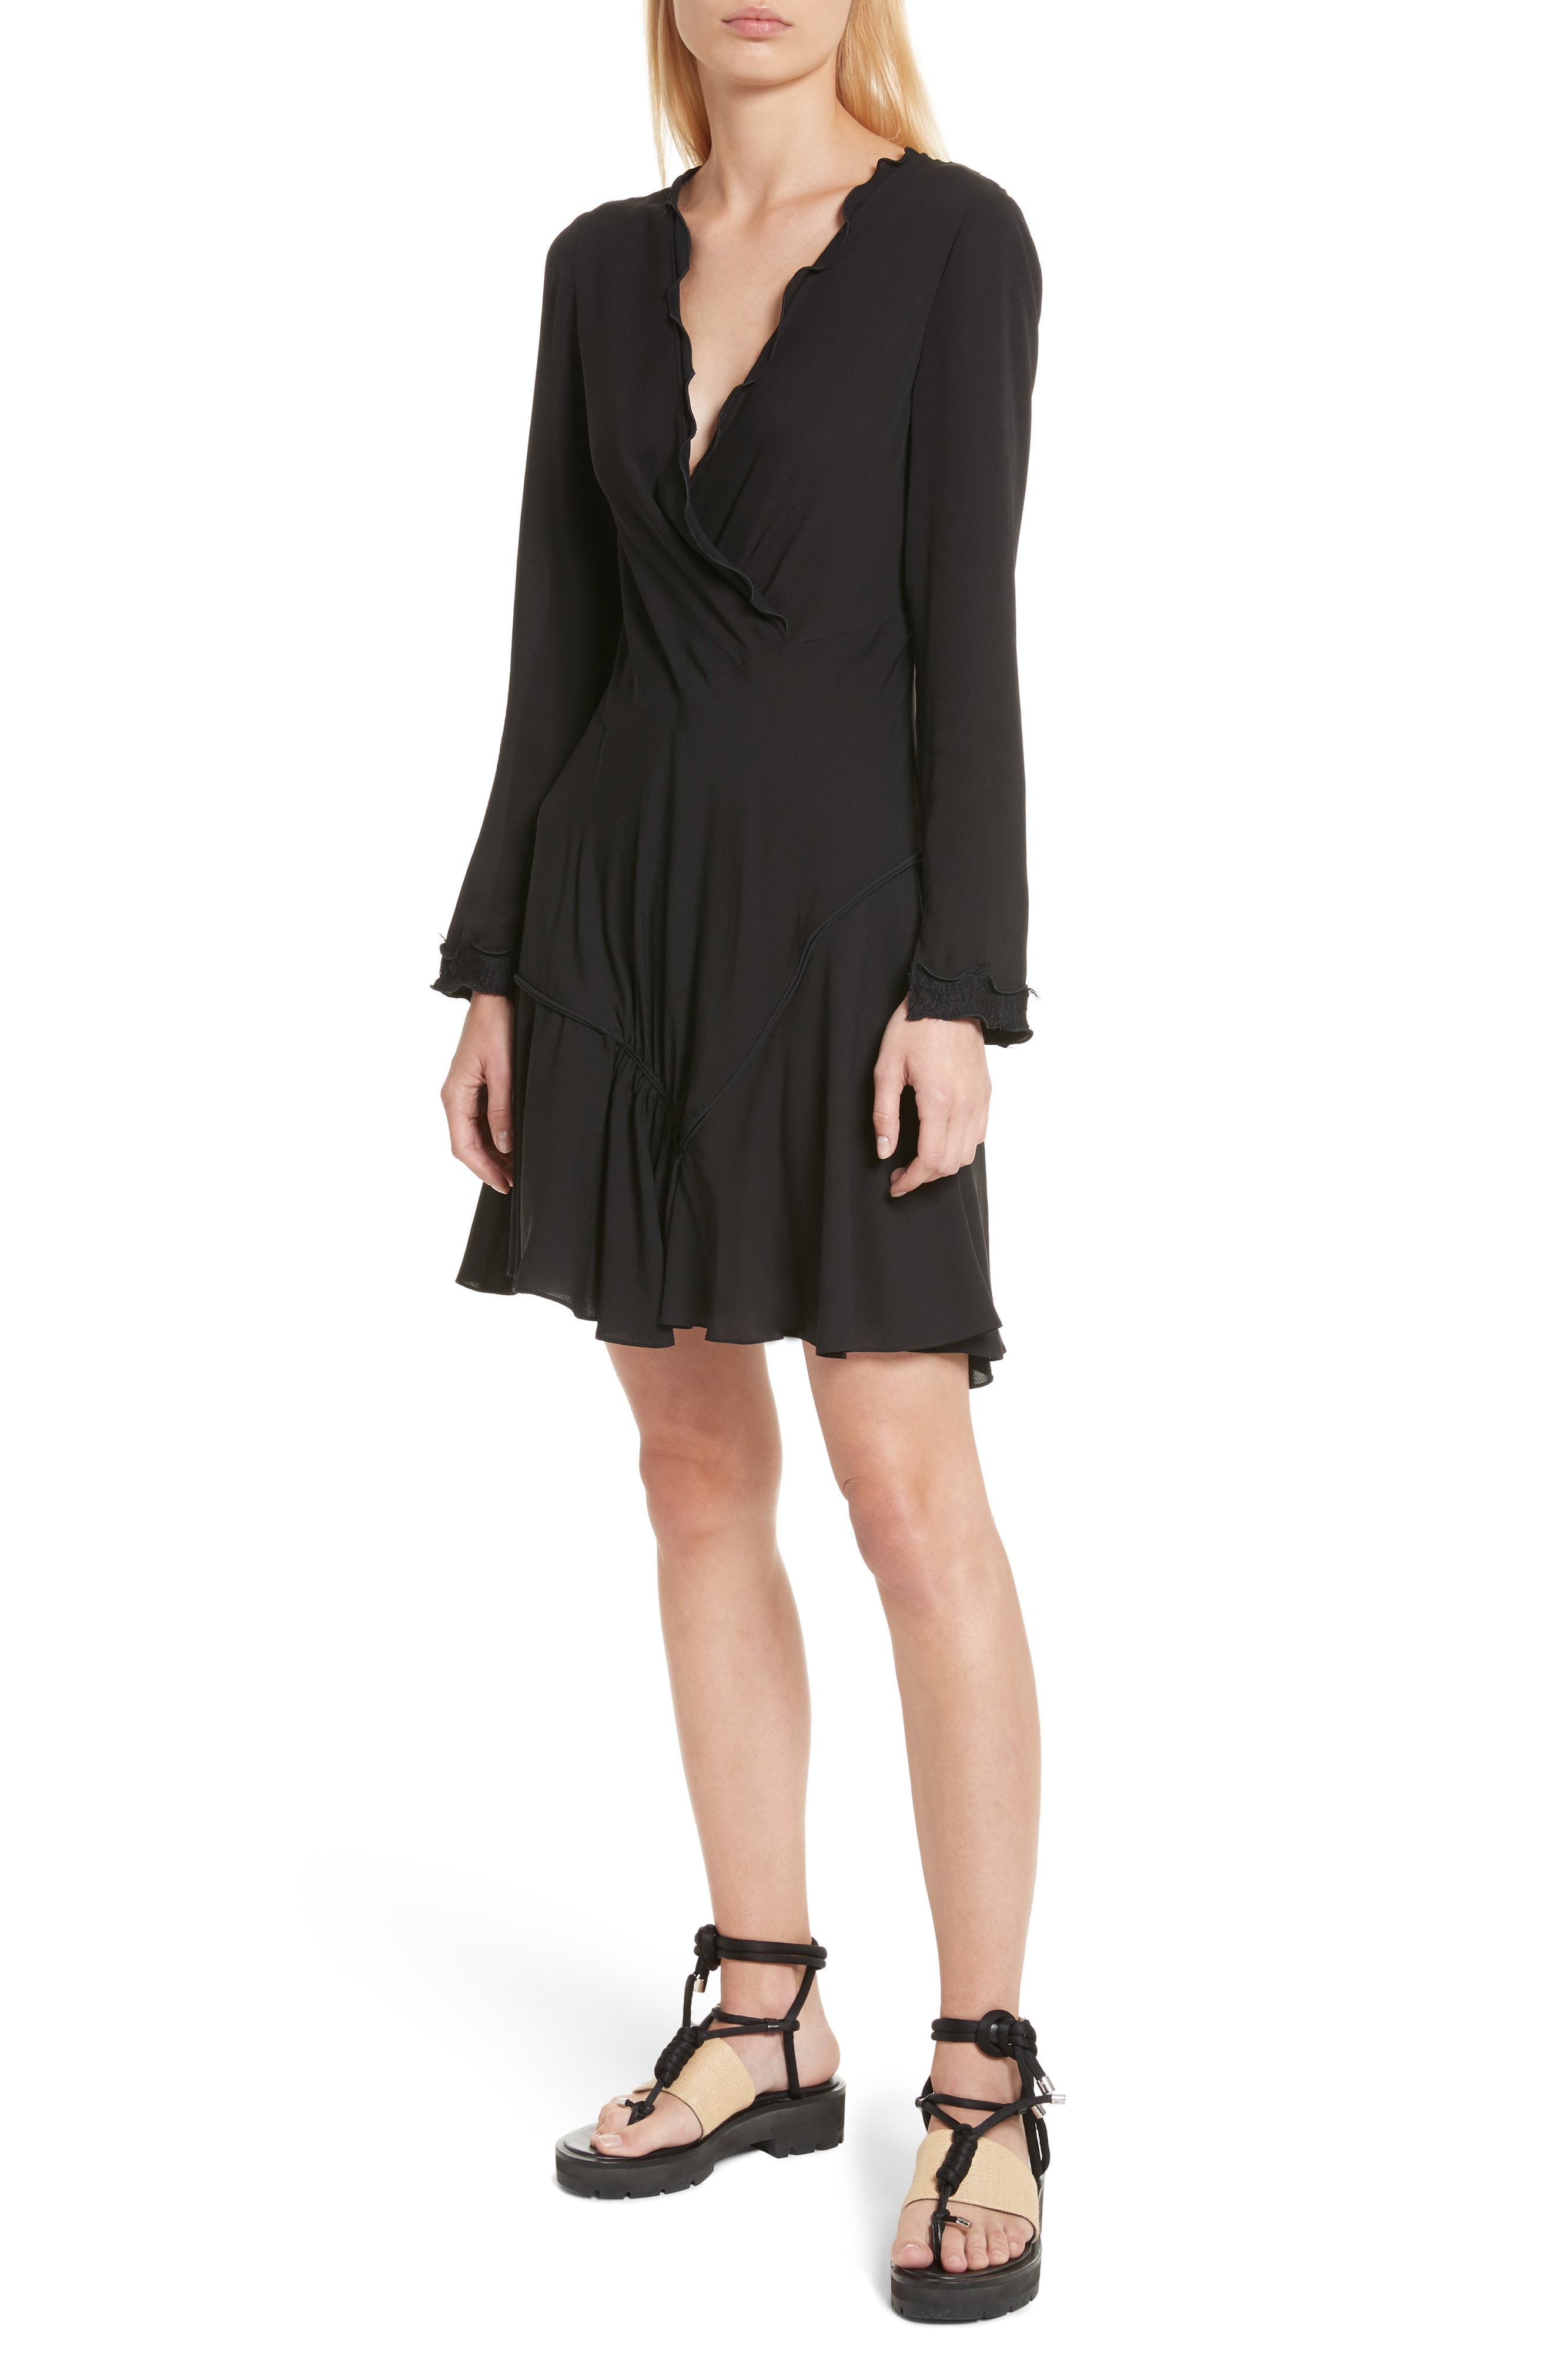 Alternate Image 1 Selected - 3.1 Phillip Lim Ruffle Edge Silk Dress